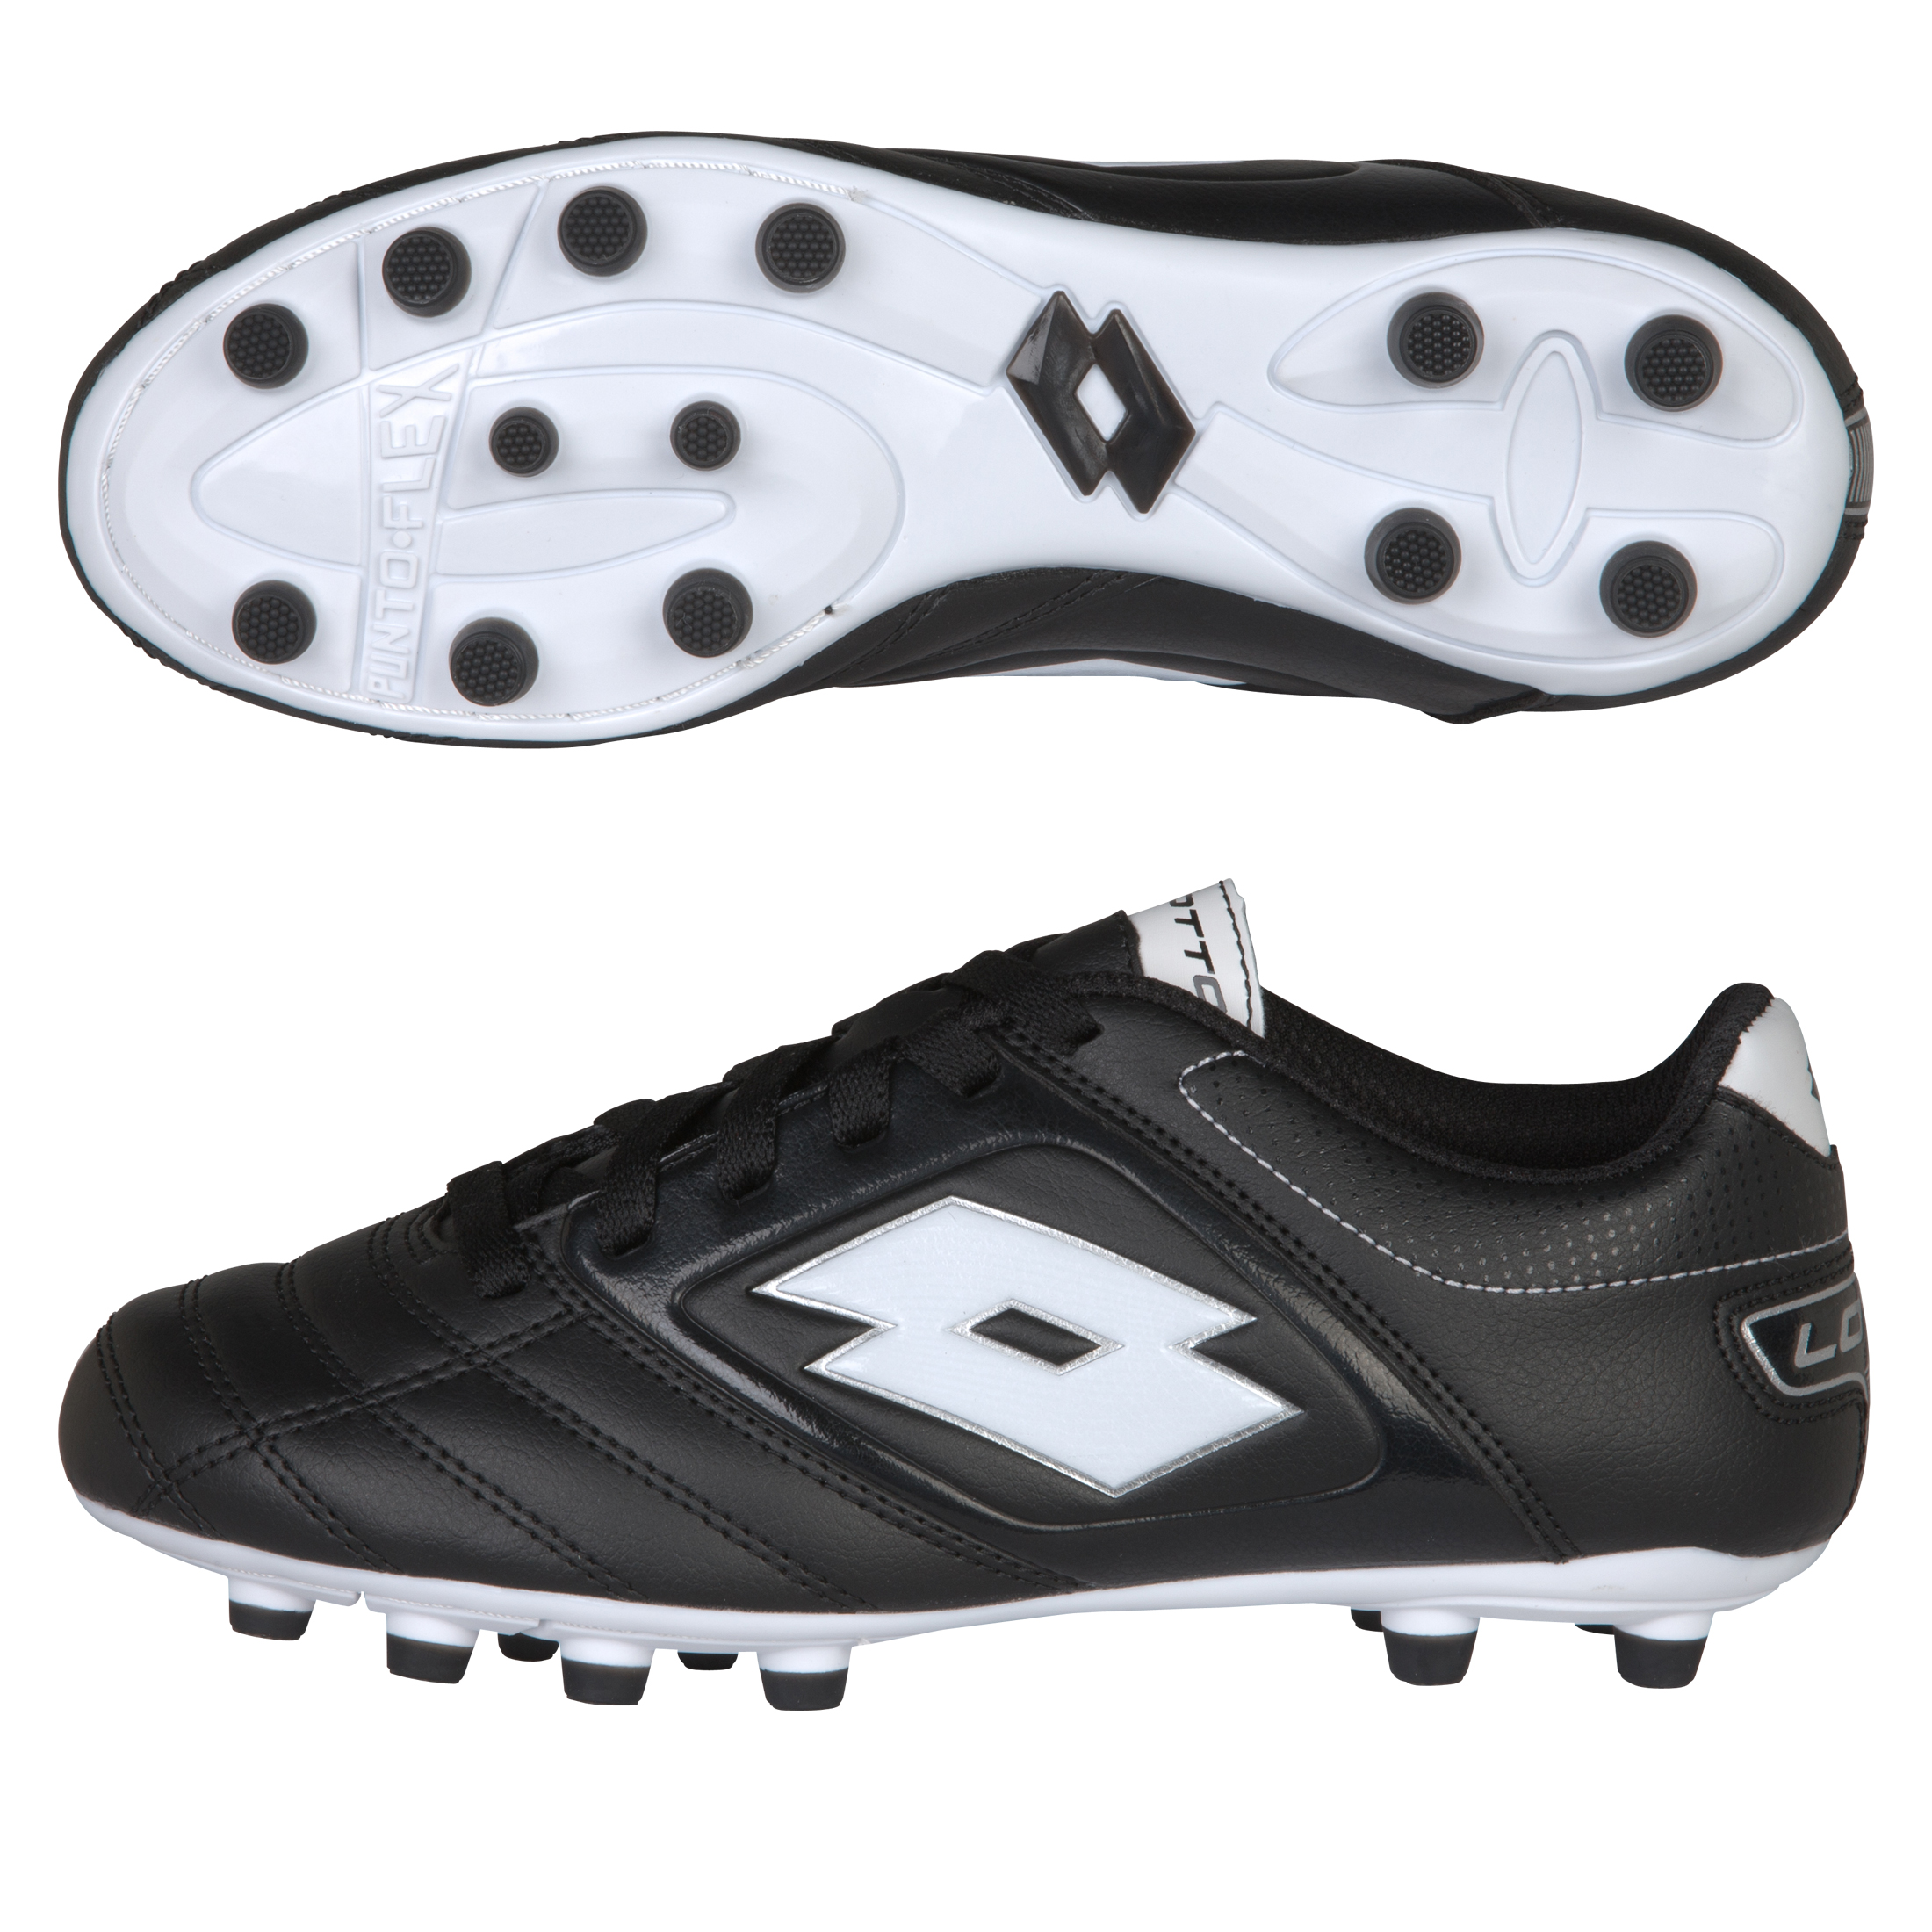 Lotto Stadio Potenza 500 Firm Ground Football Boots - Black/White